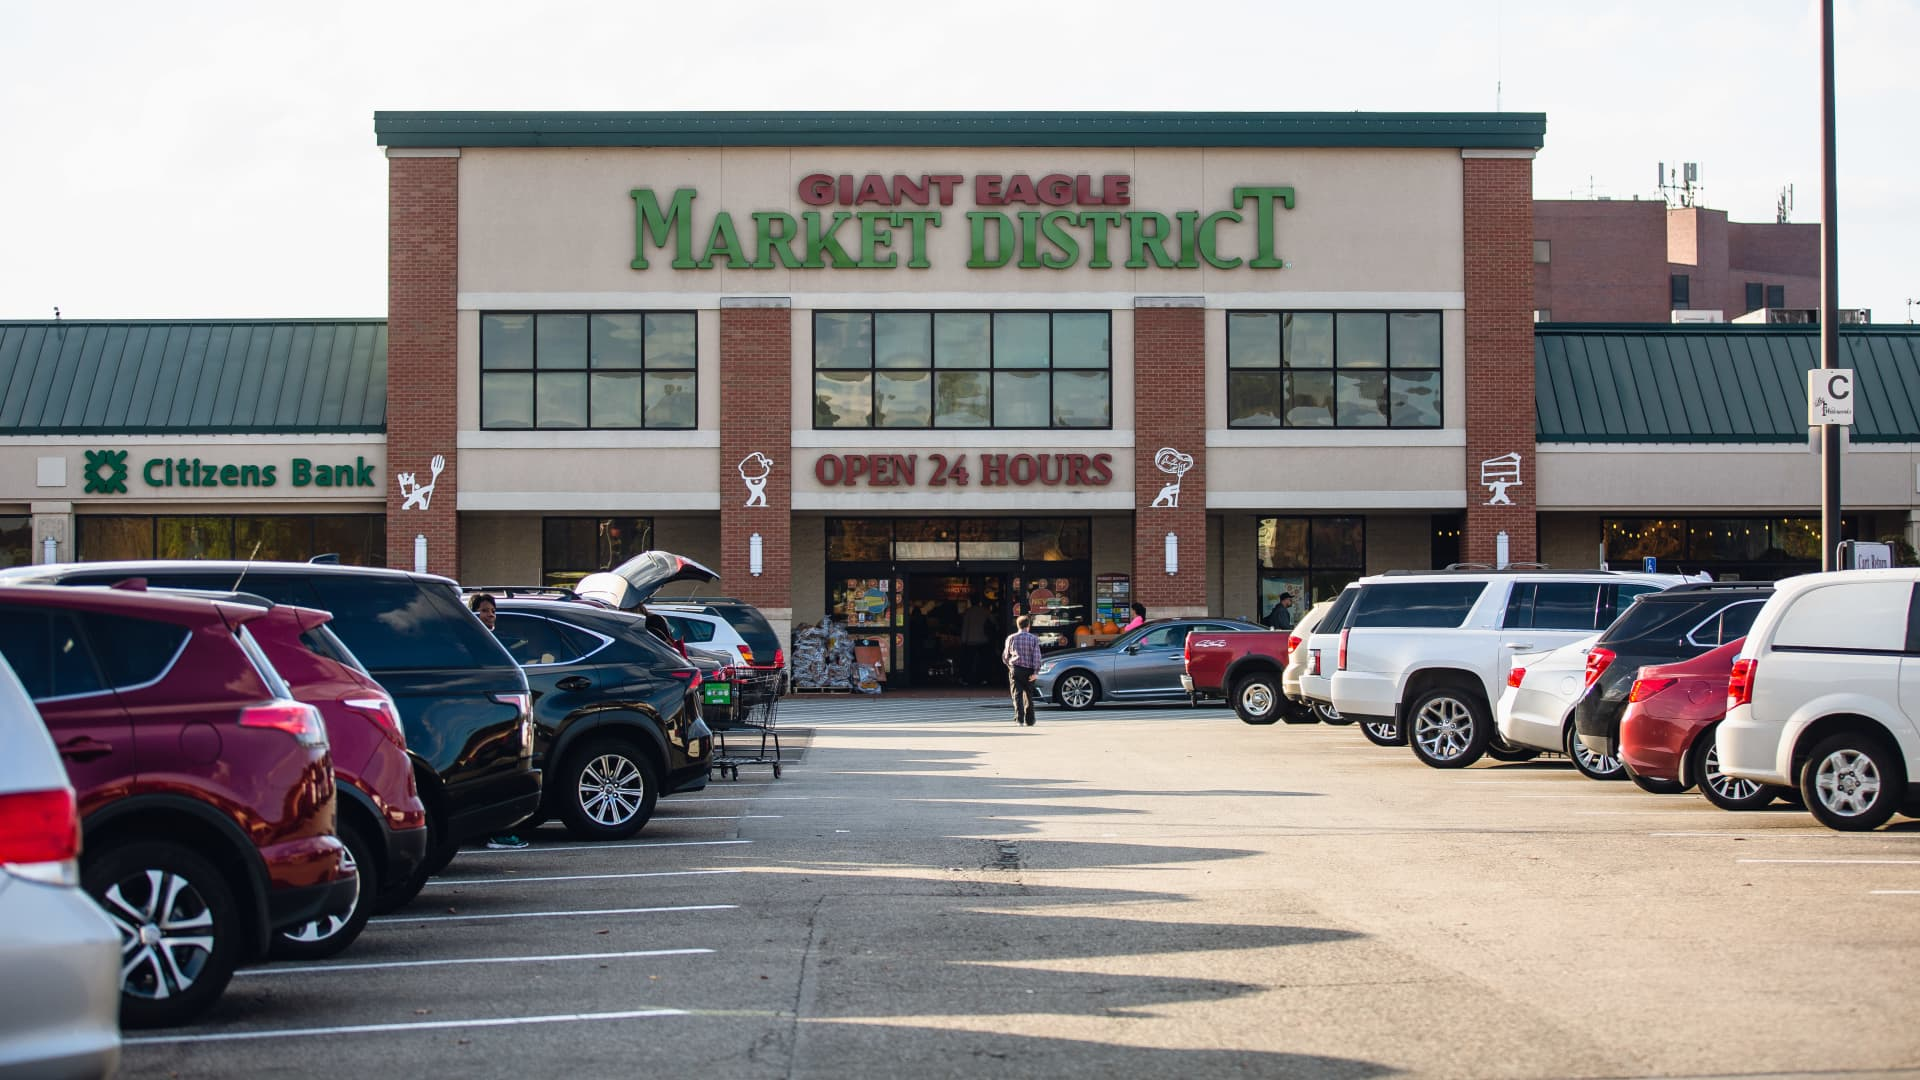 A Giant Eagle Inc. Market District supermarket stands in Pittsburgh, Pennsylvania, U.S., on Tuesday, Oct. 29, 2019.